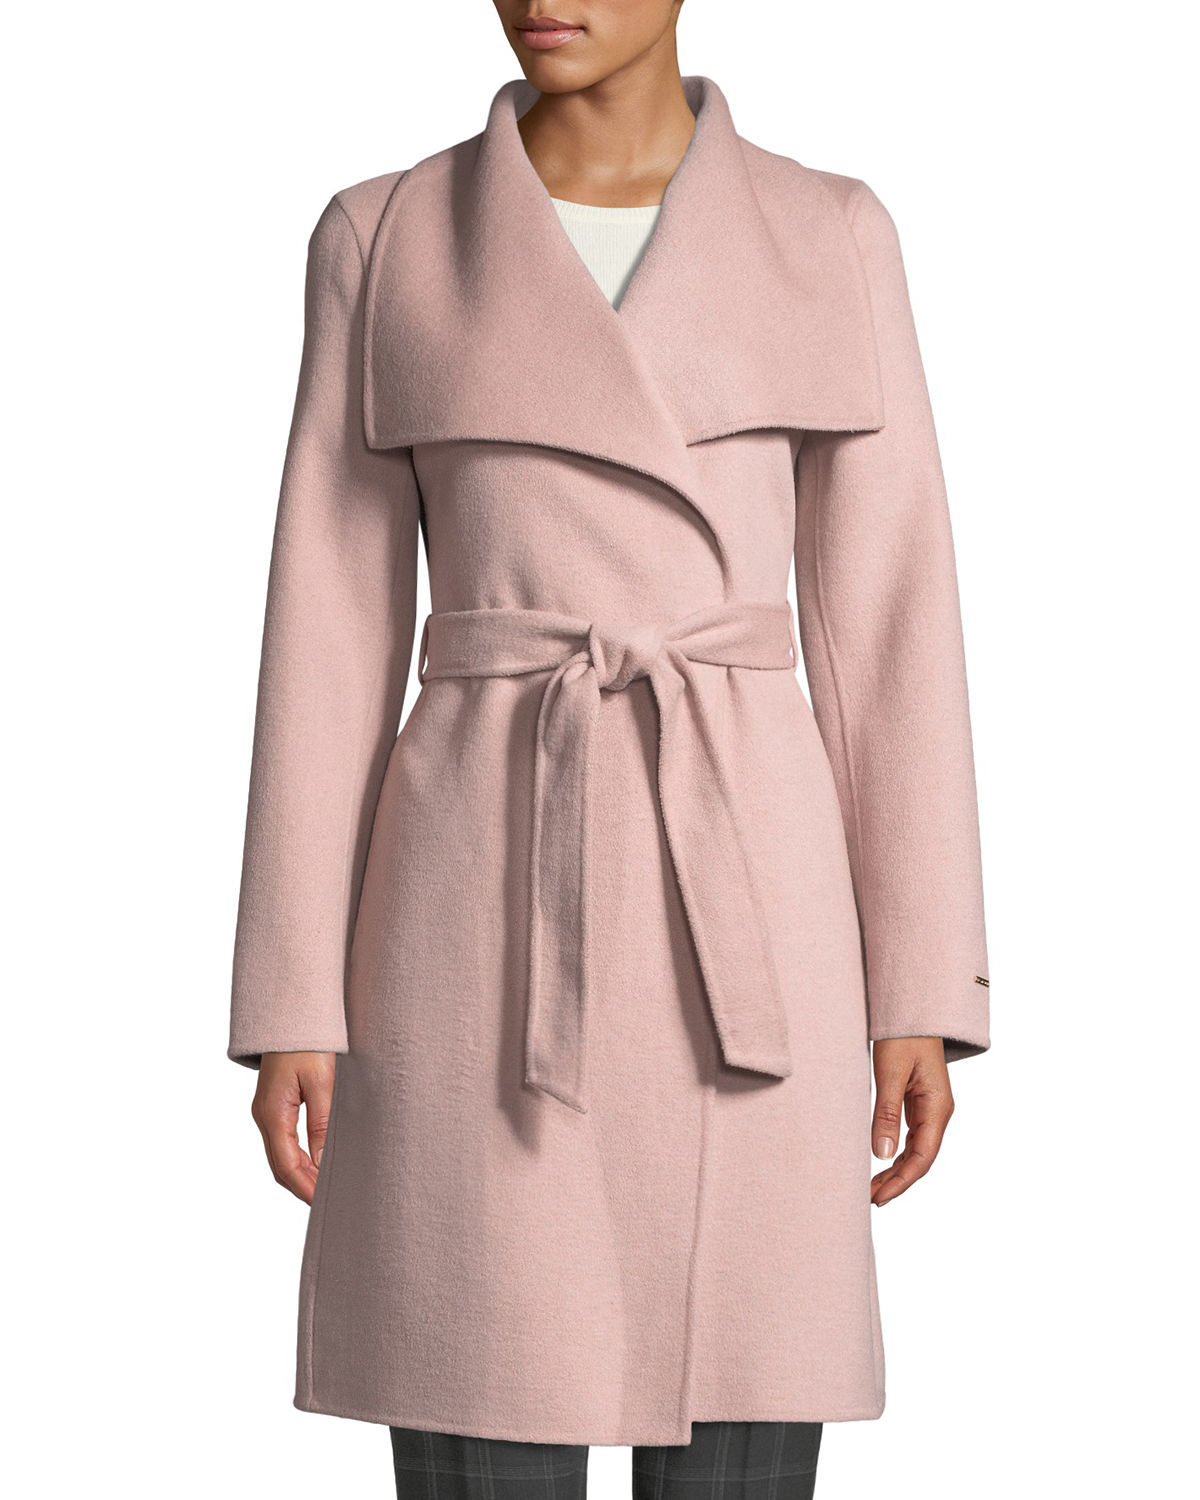 Tahari ELLIE HANDMADE WRAP COAT W/ BELT